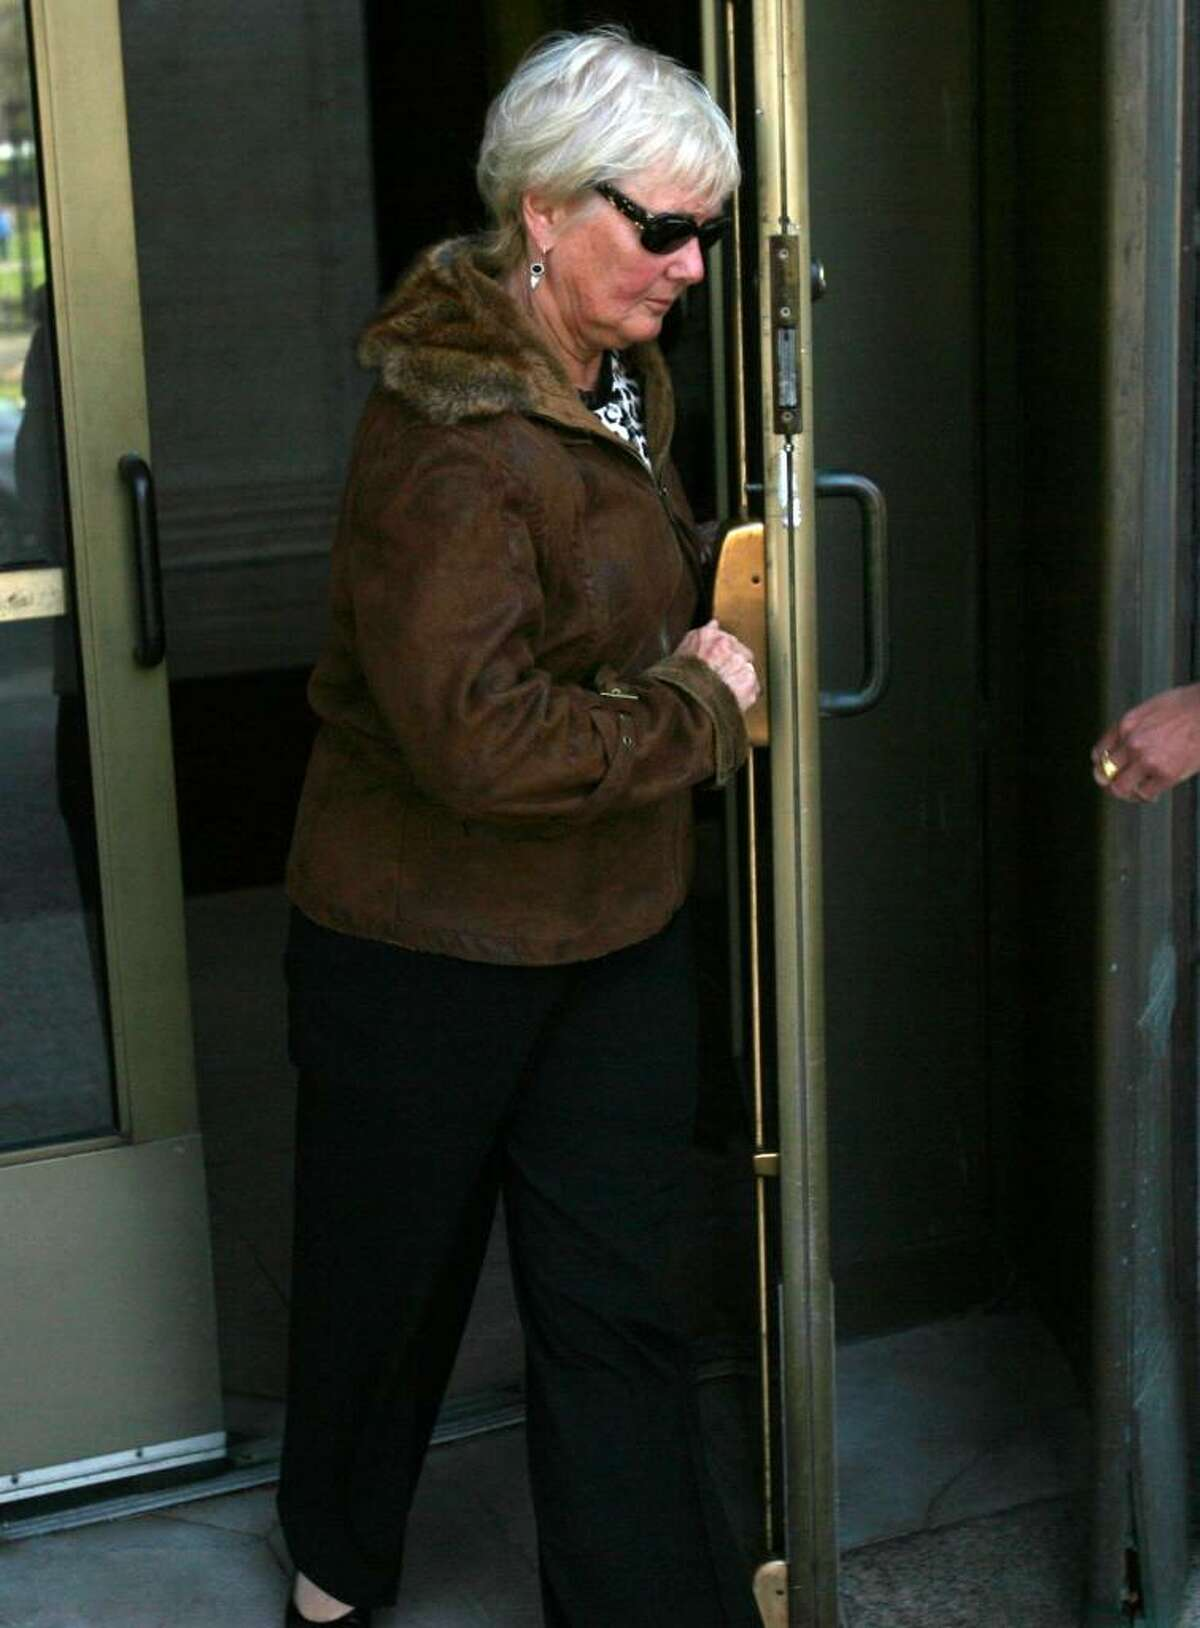 Daniel Perlitz' mother Cheryl Perlitz leaves the federal courthouse in New Haven after attending a hearing in her son's case on Thursday, April 1, 2010.